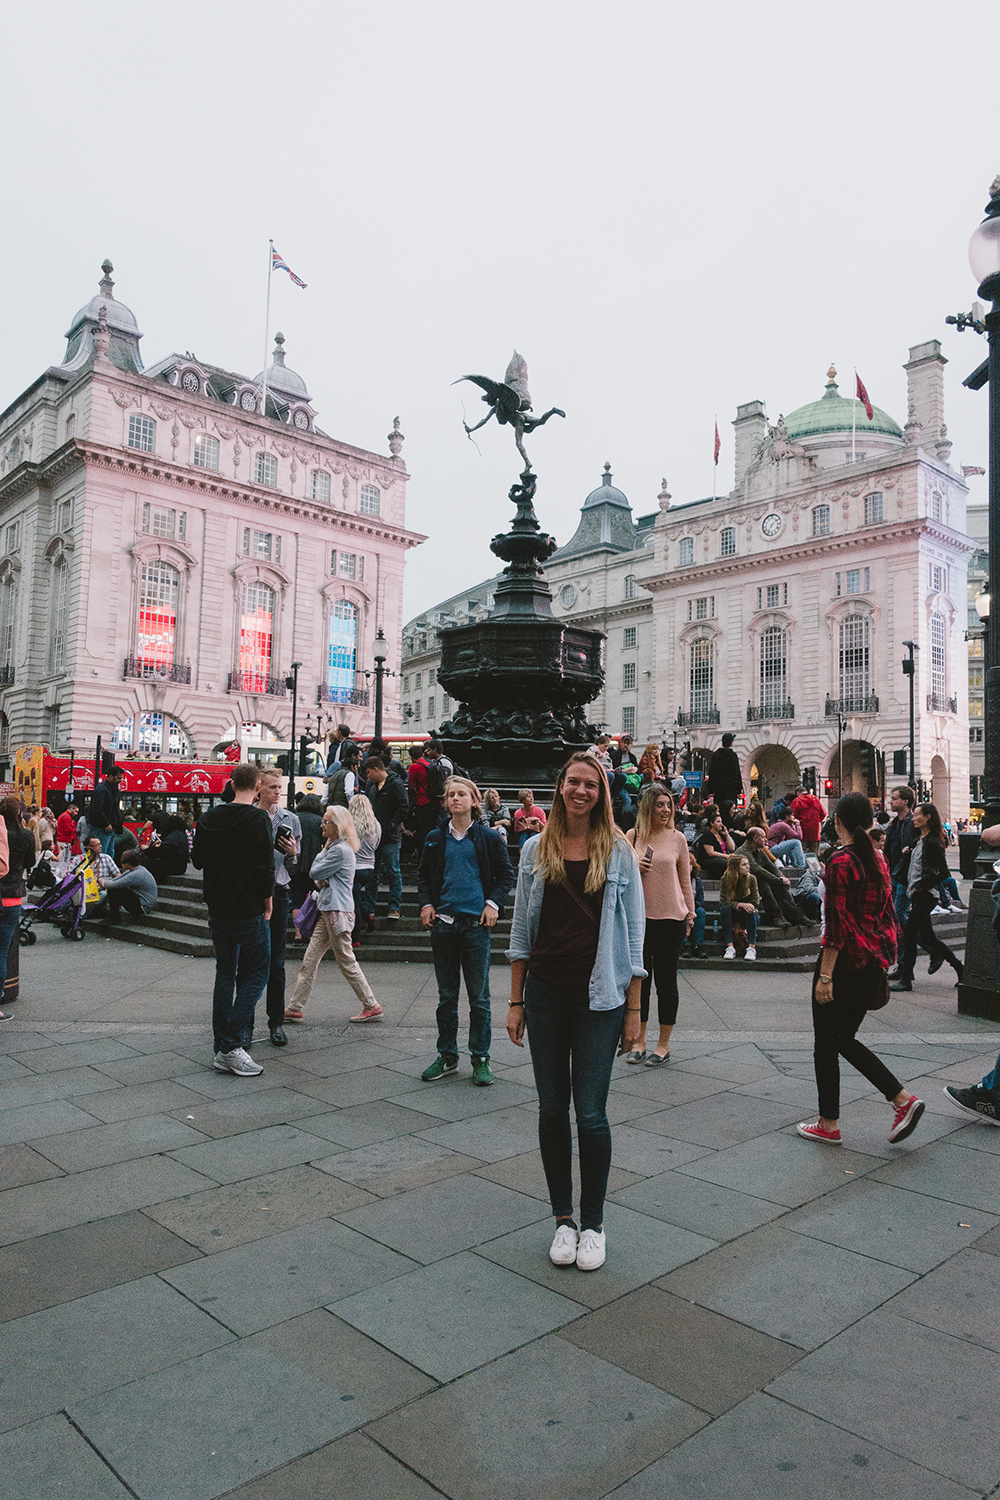 Piccadilly Circus in the evening.